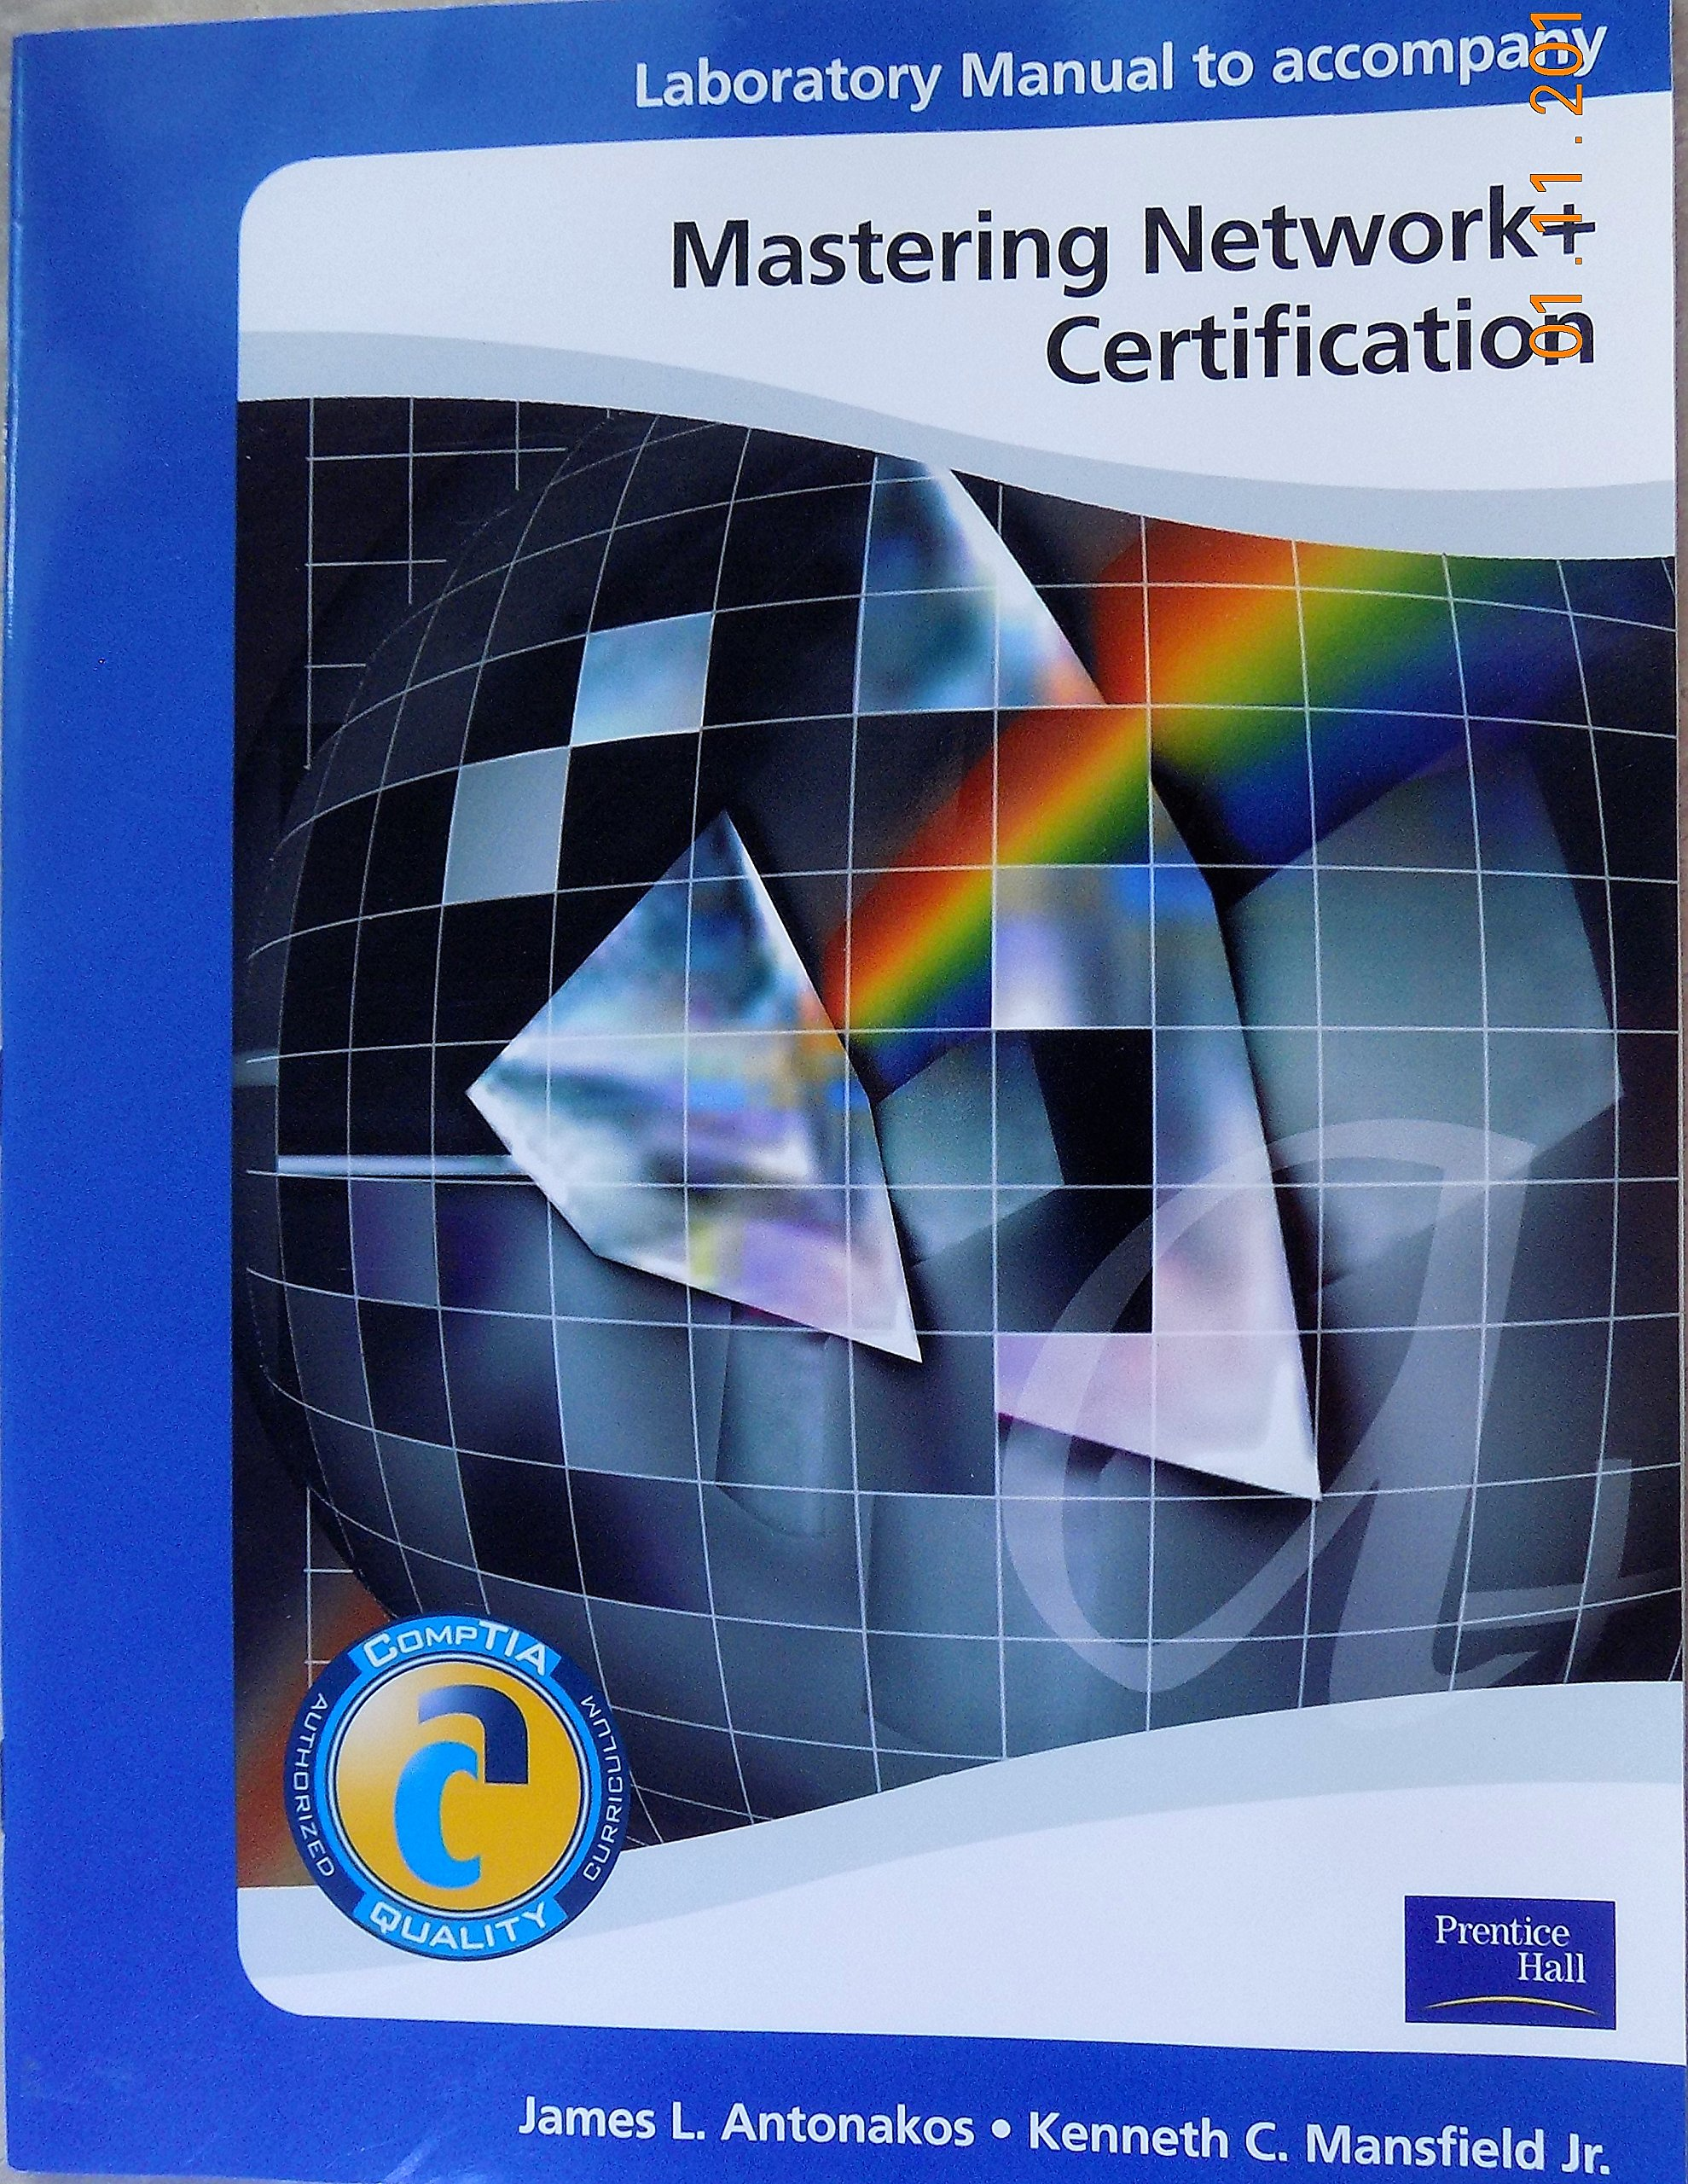 Mastering Network+ Certification and Laboratory Manual Package: James L.  Antonakos, Jr., Kenneth C. Mansfield: 9780131121416: Amazon.com: Books